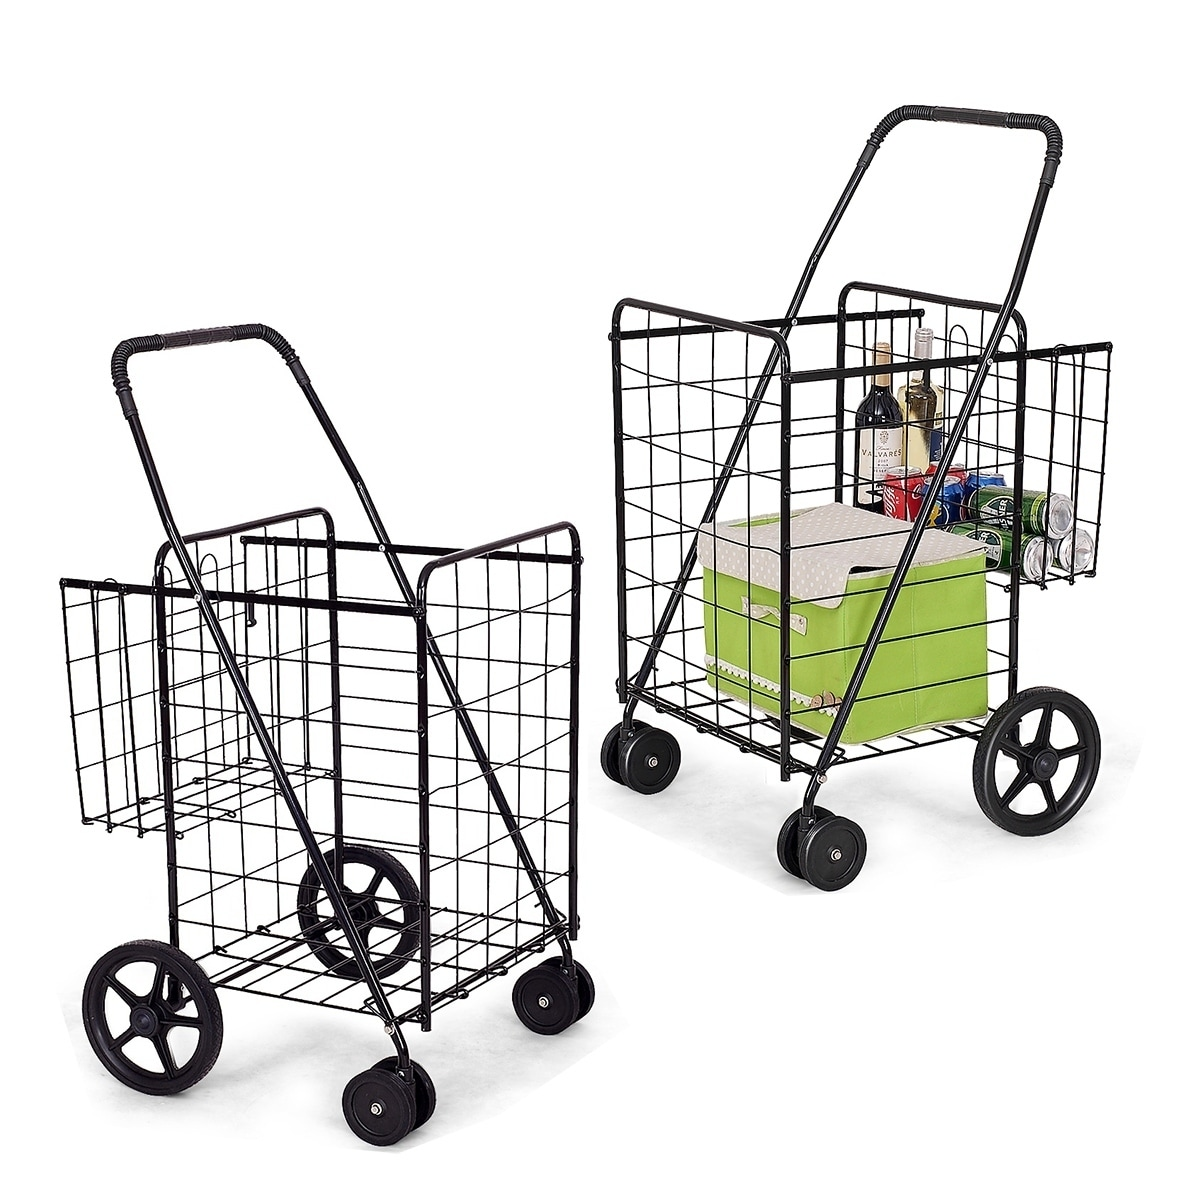 Utility Folding Shopping Cart With Swivel Wheels Easy Storage Overstock 30608510